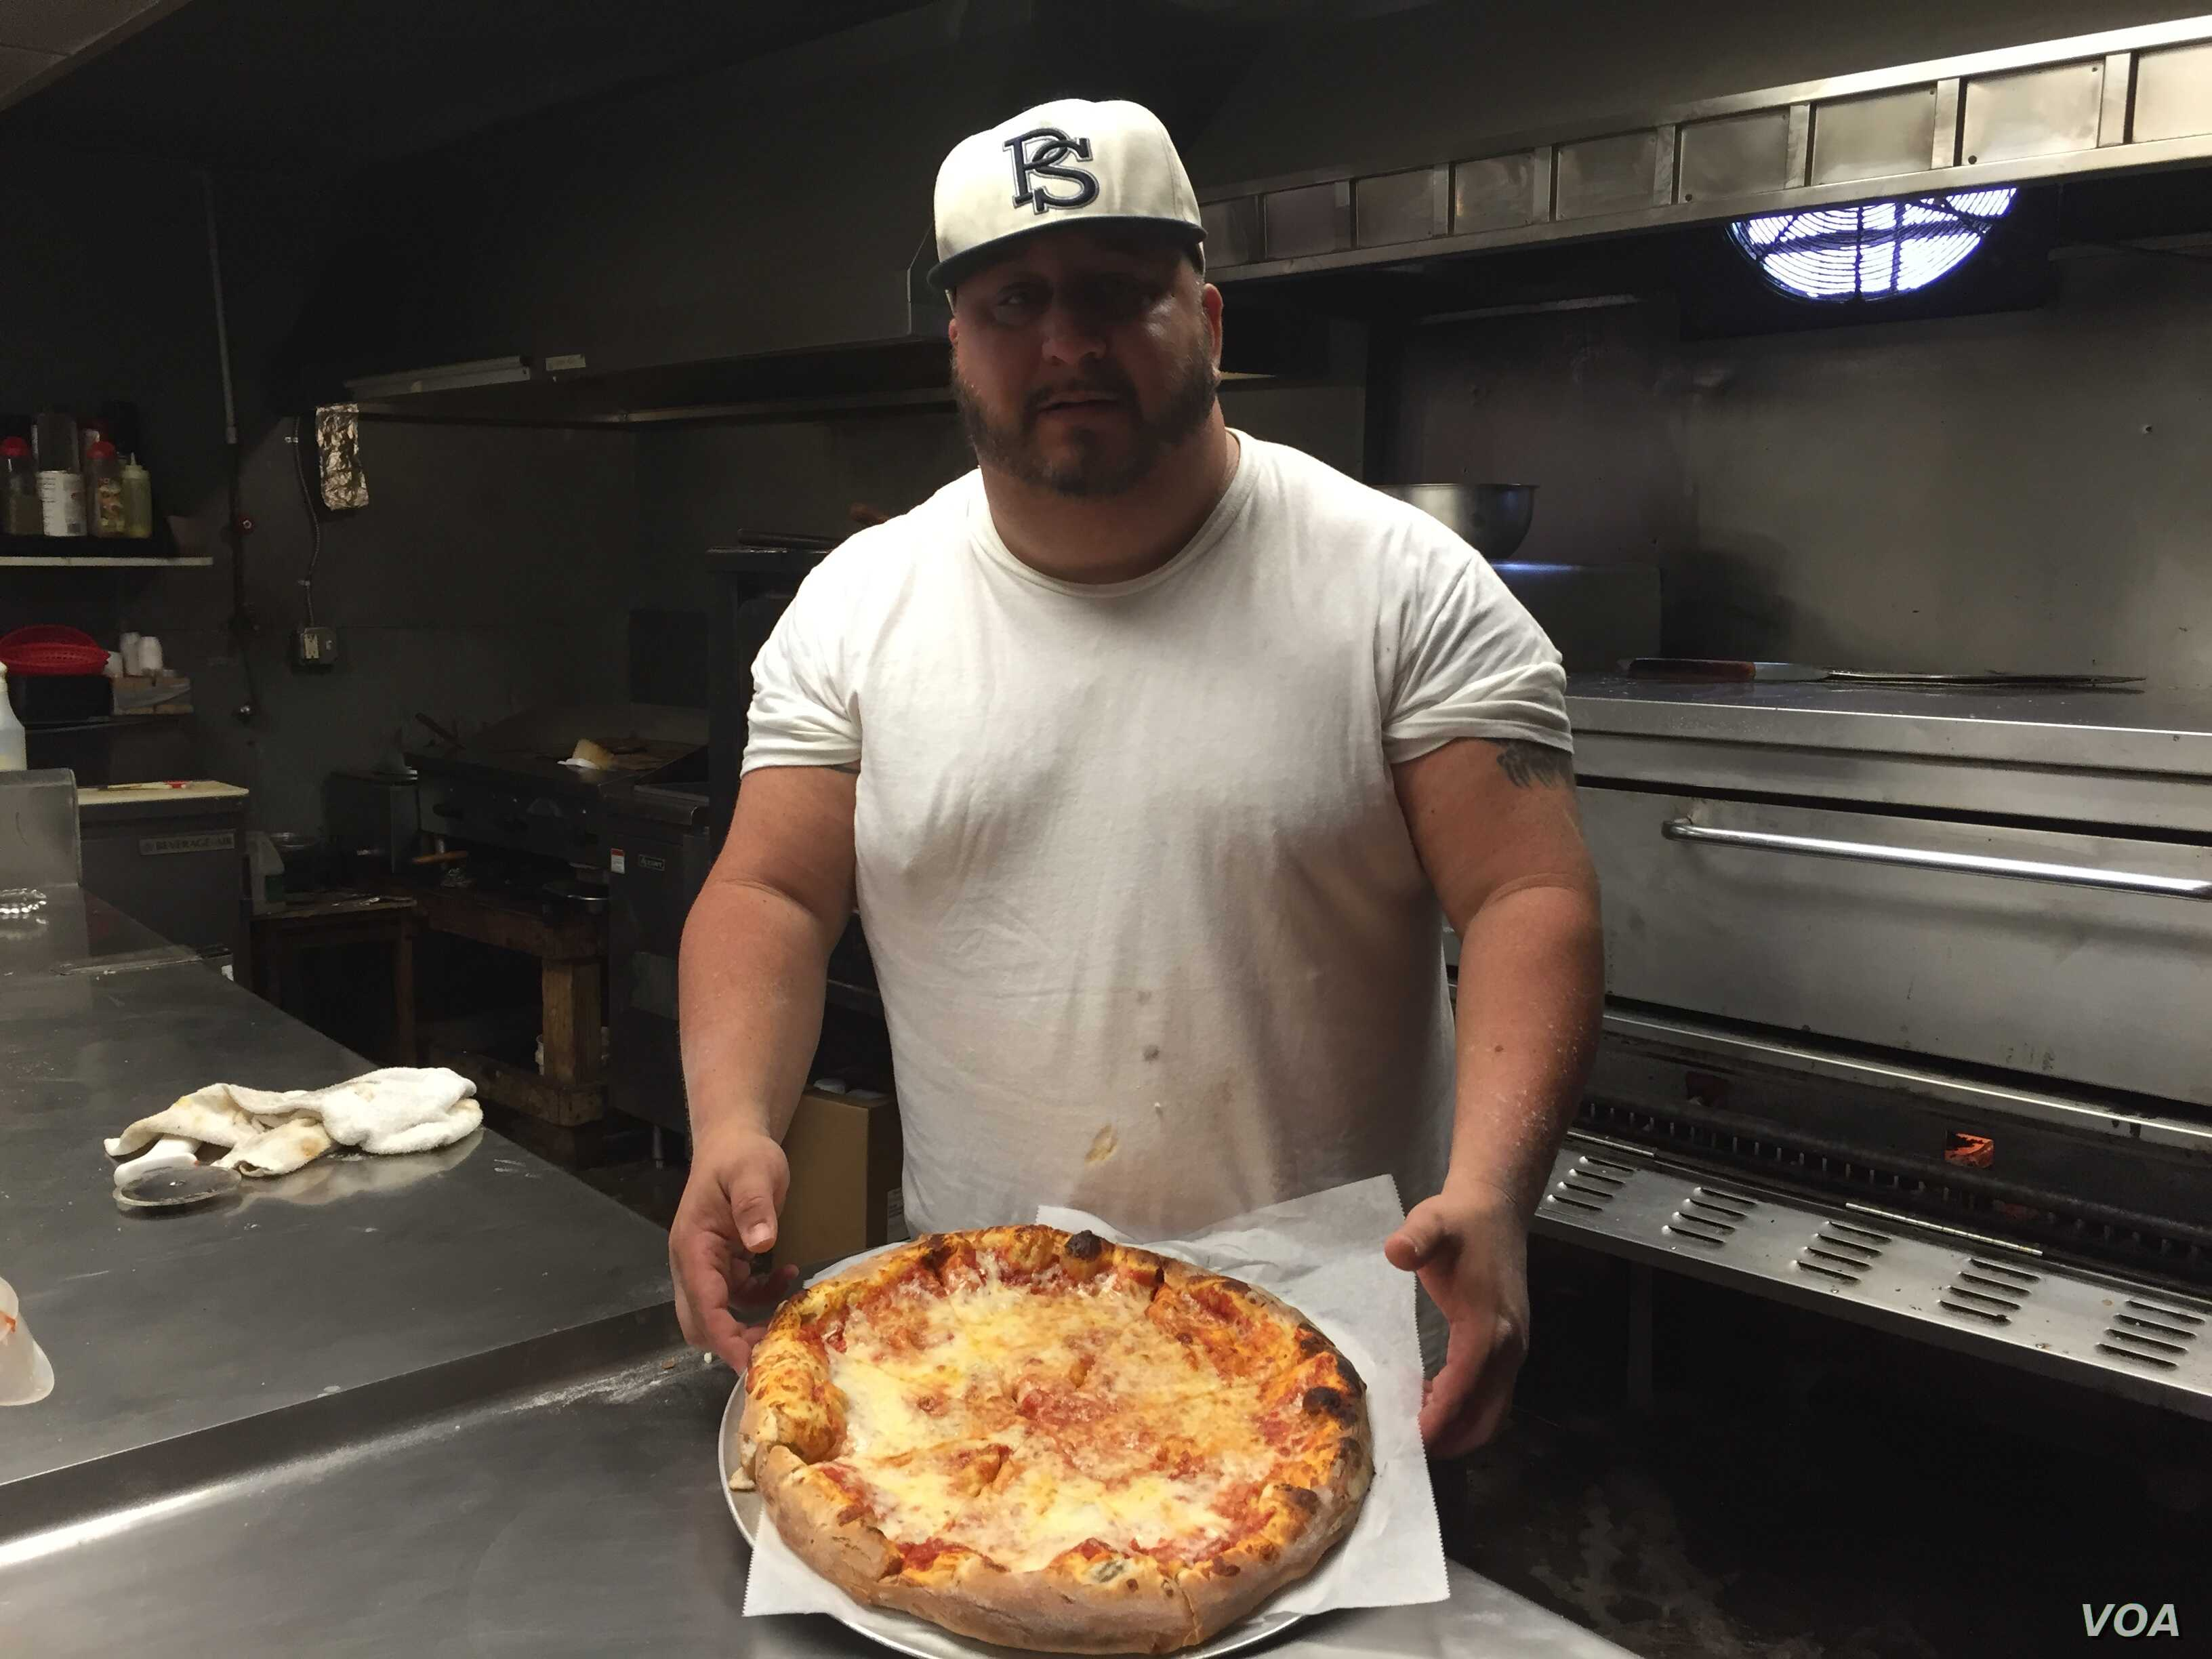 "Marty Coar Jr., who runs Two Brothers Pizza in Dunmore, Pennsylvania, made news during Democratic presidential candidate Hillary Clinton's last visit when he made what he called a ""Madam President"" pizza topped with hot sauce. (A. Pande/VOA)"